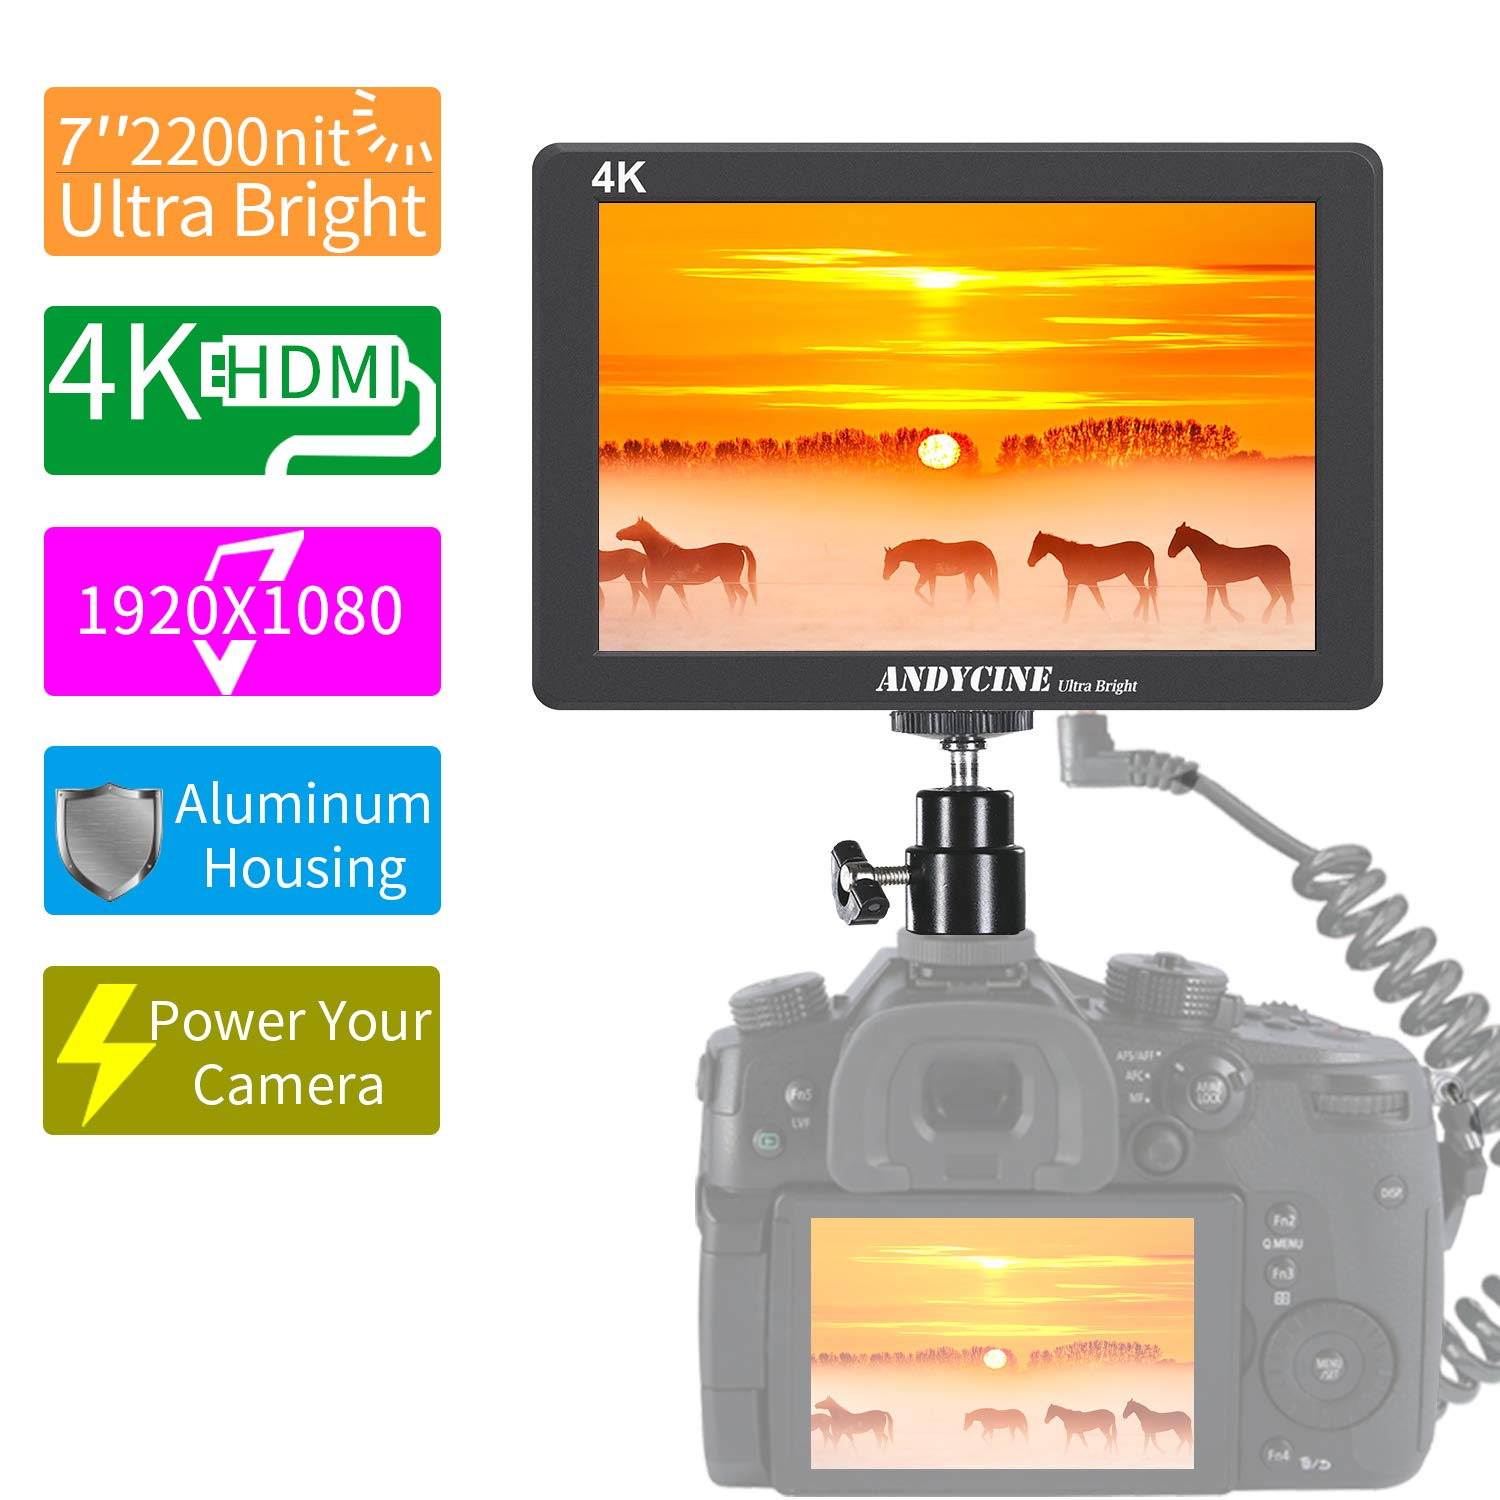 ANDCYINE X7 7Inch Ultra Brightness Camera Video Monitor CNC Al Housing 1920x1080 Camera Filed Monitor Accept 4K HDMI Input/Output Camera Field Monitor Compatible for Sony,Canon,Panasonic,Fuji DSLR by ANDYCINE